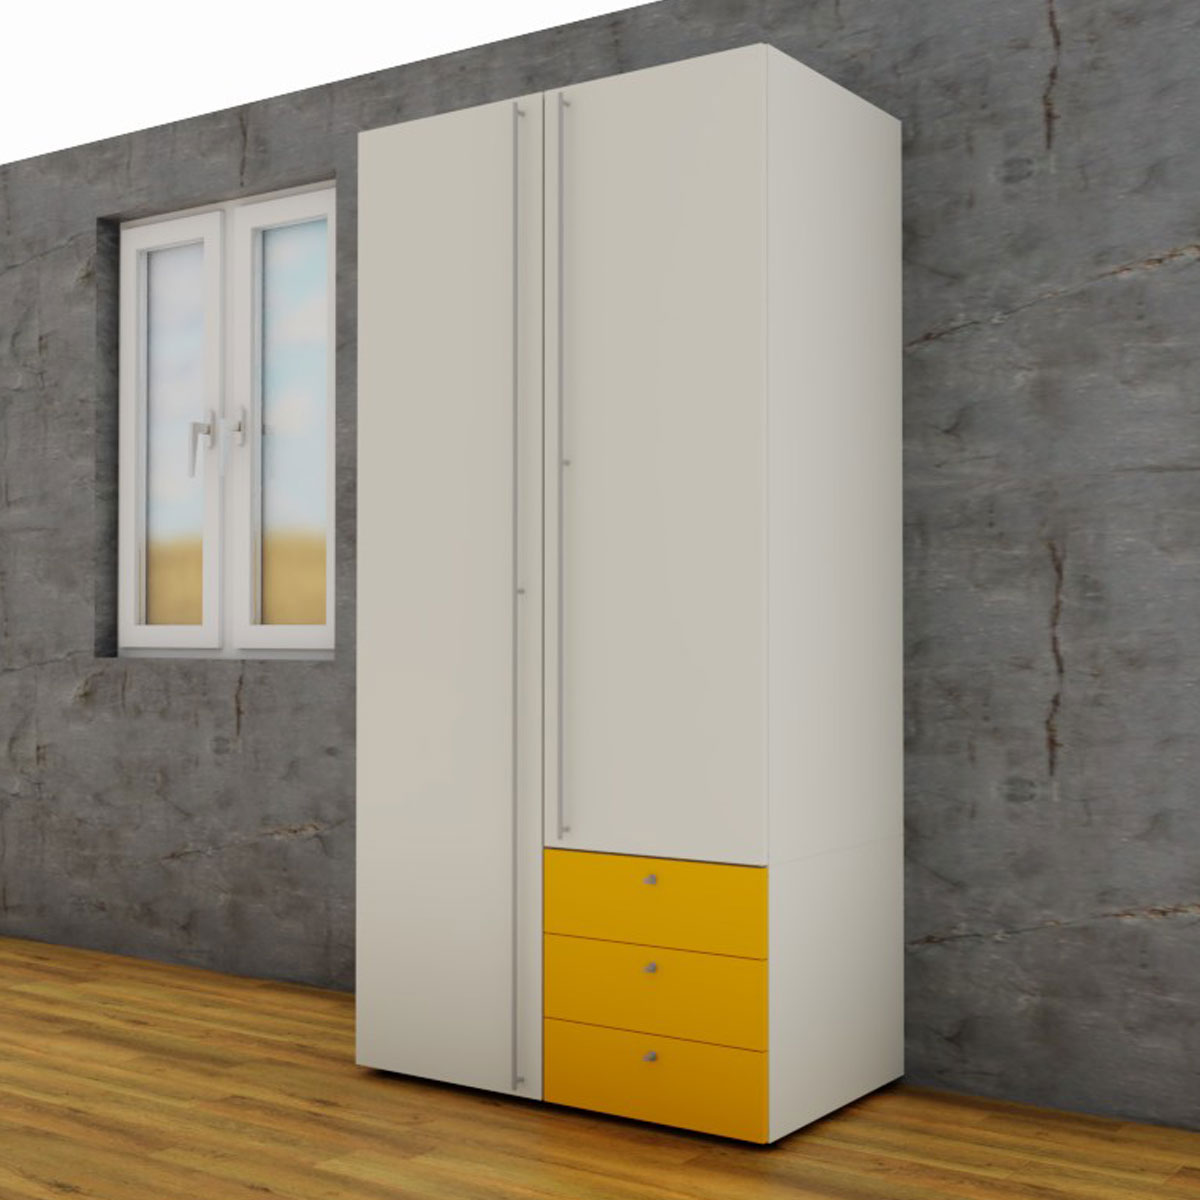 Badezimmer Container Mieten Container Design Mbel Great Customers Also Viewed These Products